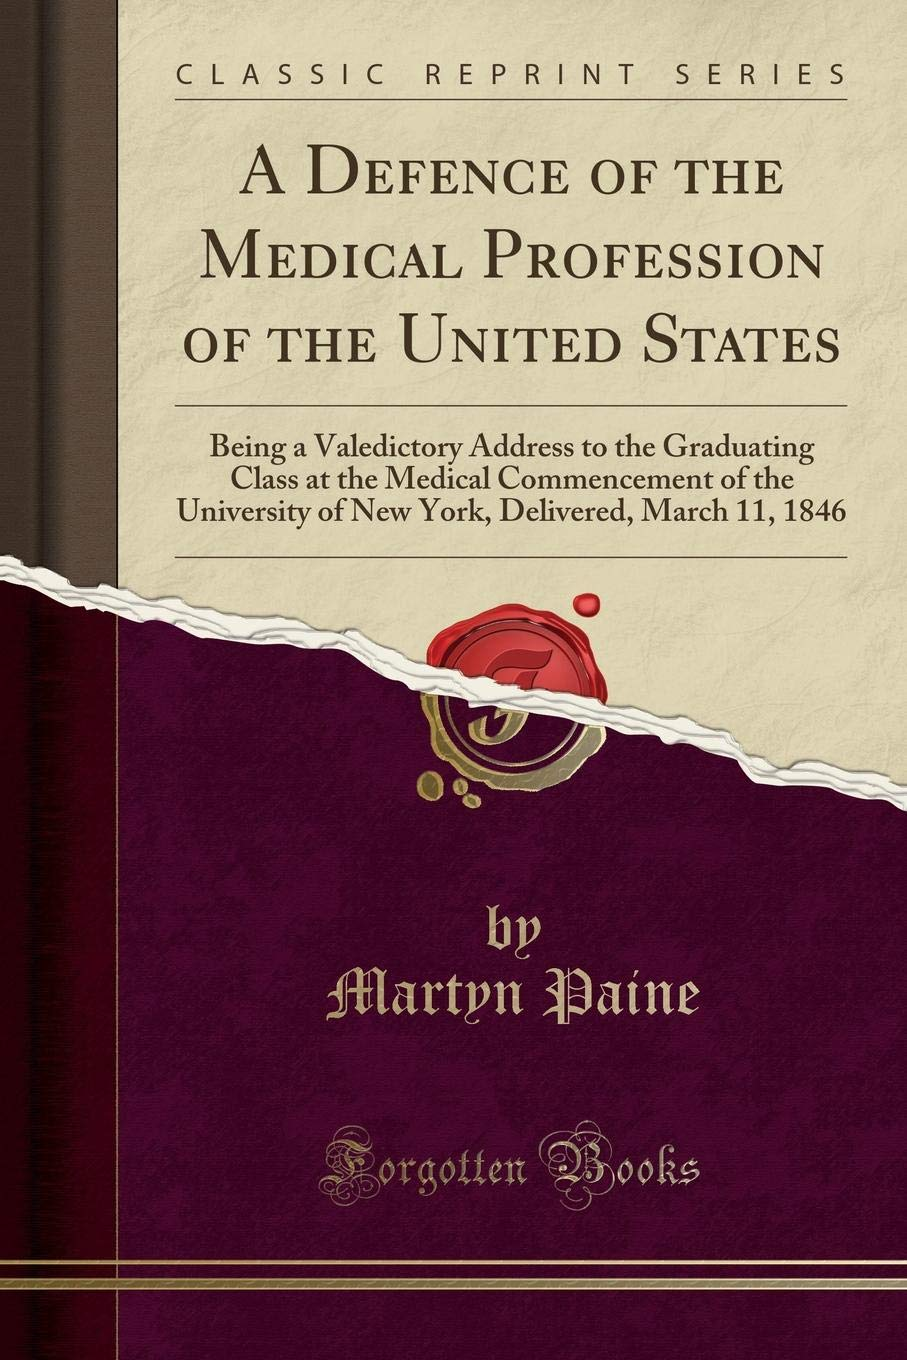 A Defence of the Medical Profession of the United States: Being a Valedictory Address to the Graduating Class at the Medical Commencement of the ... Delivered, March 11, 1846 (Classic Reprint) PDF